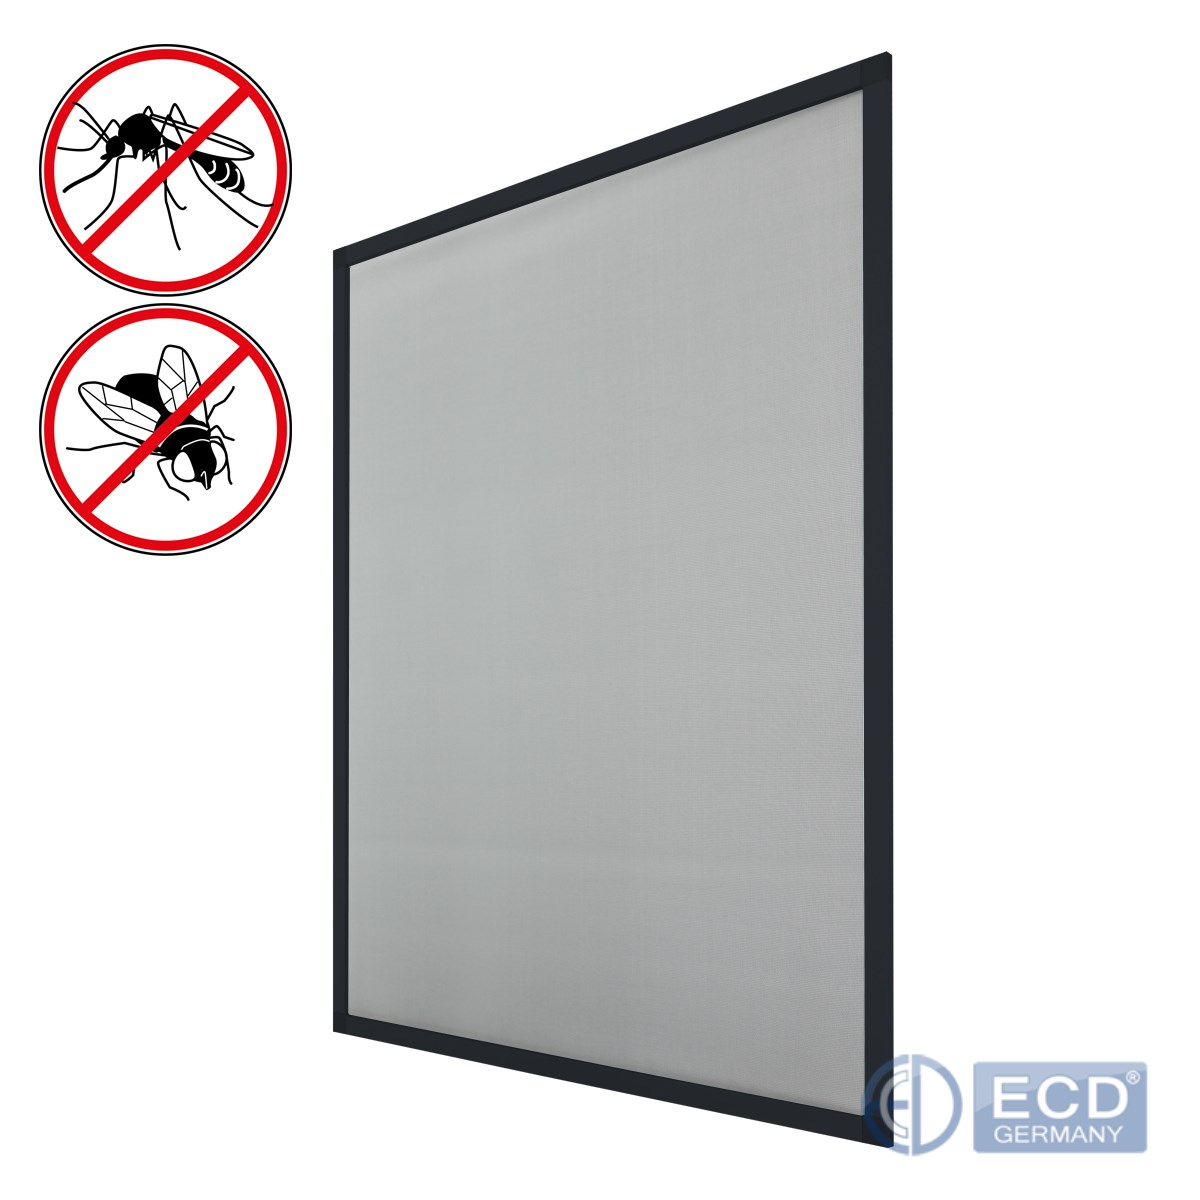 Mosquito net fly screen insect mesh aluminum frame brown white gray ...